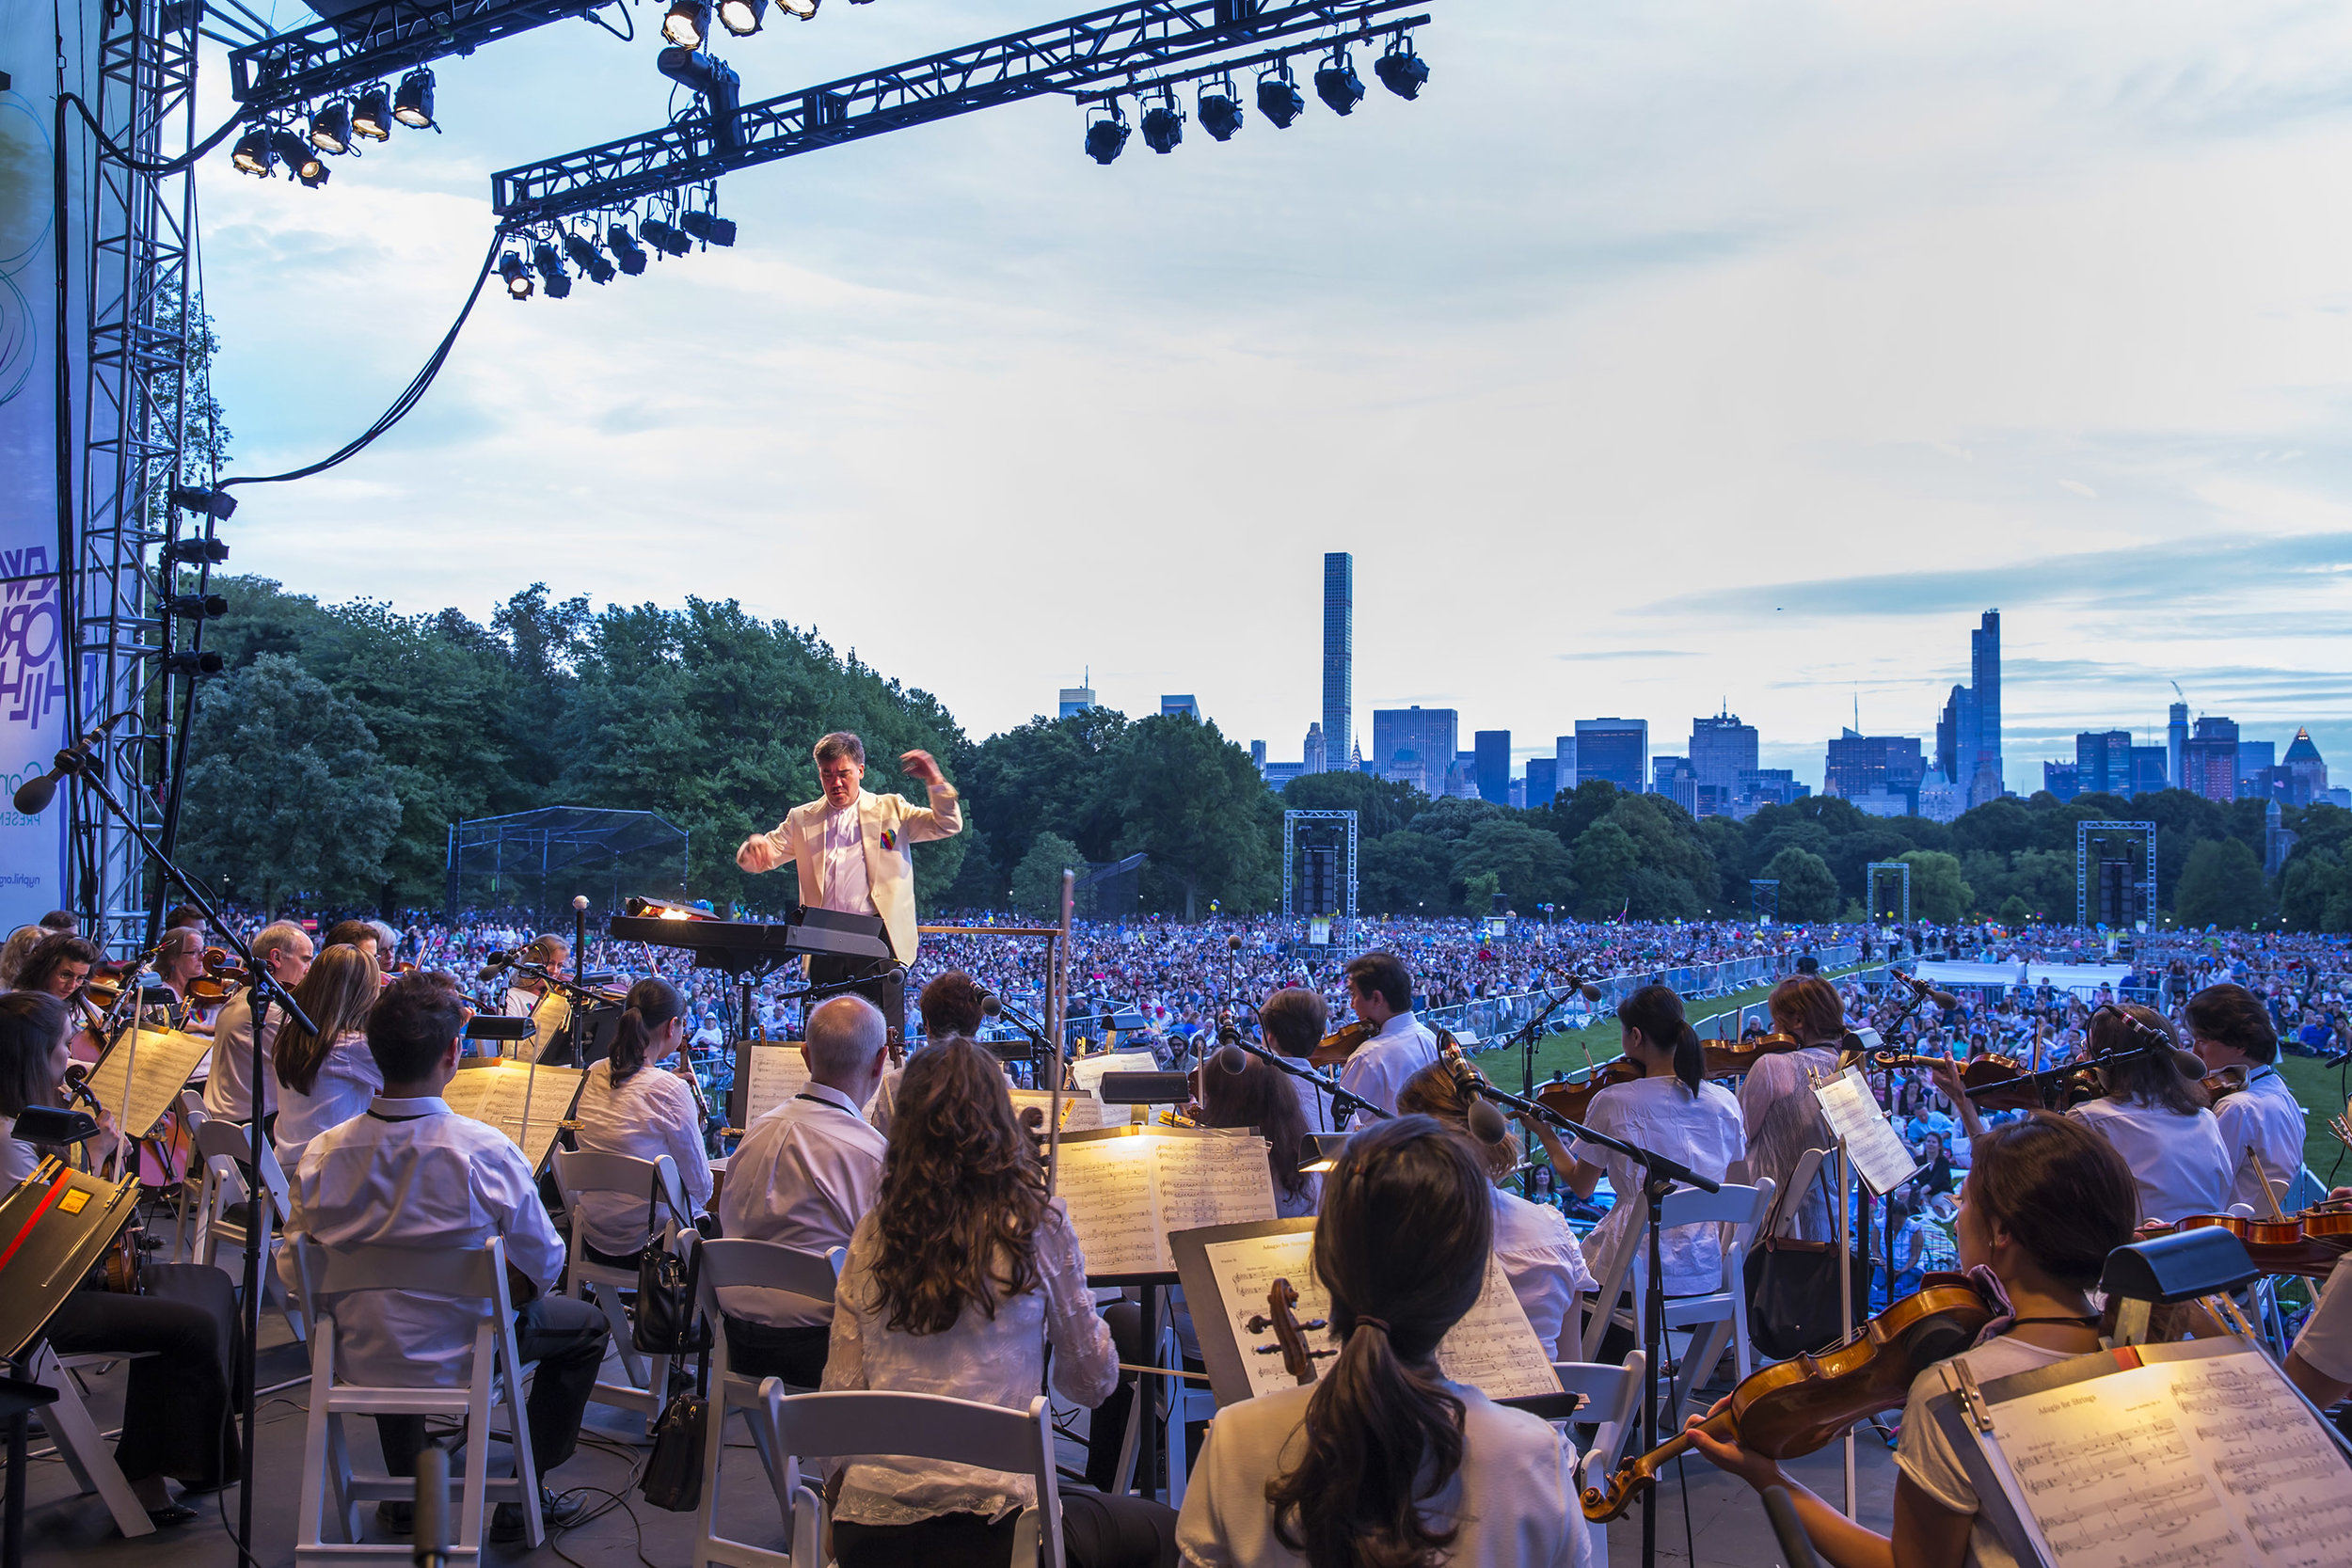 Although the Concerts in the Parks are joyous occasions, the 2016 series began with a sober moment when Alan Gilbert led a performance of Barber's  Adagio for Strings  dedicated to the victims of the Orlando tragedy and their families.  Watch the performance .